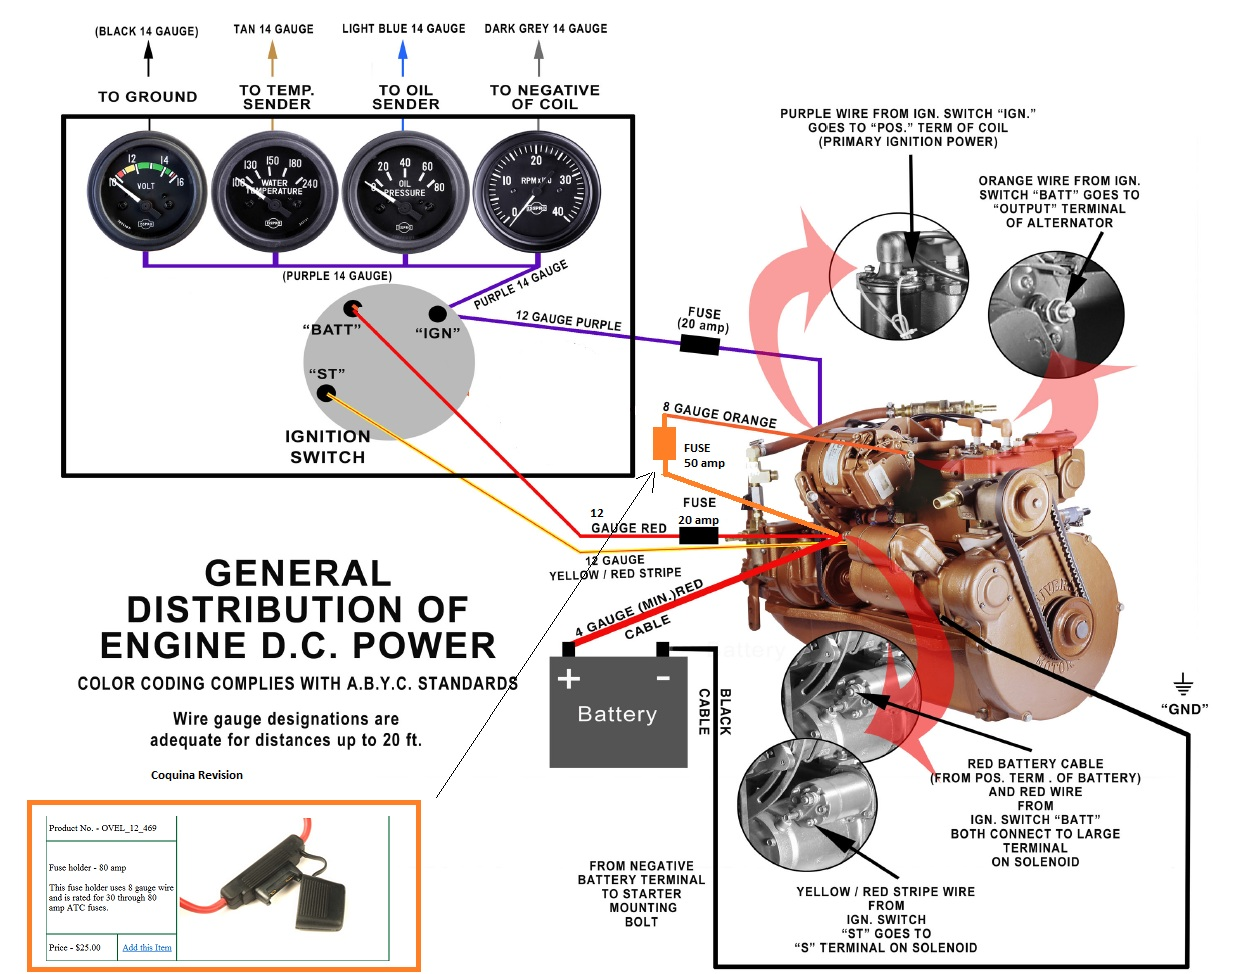 A4 Electrical Wiring Schematic - Moyer Marine Atomic 4 Community - Home of  the Afourians